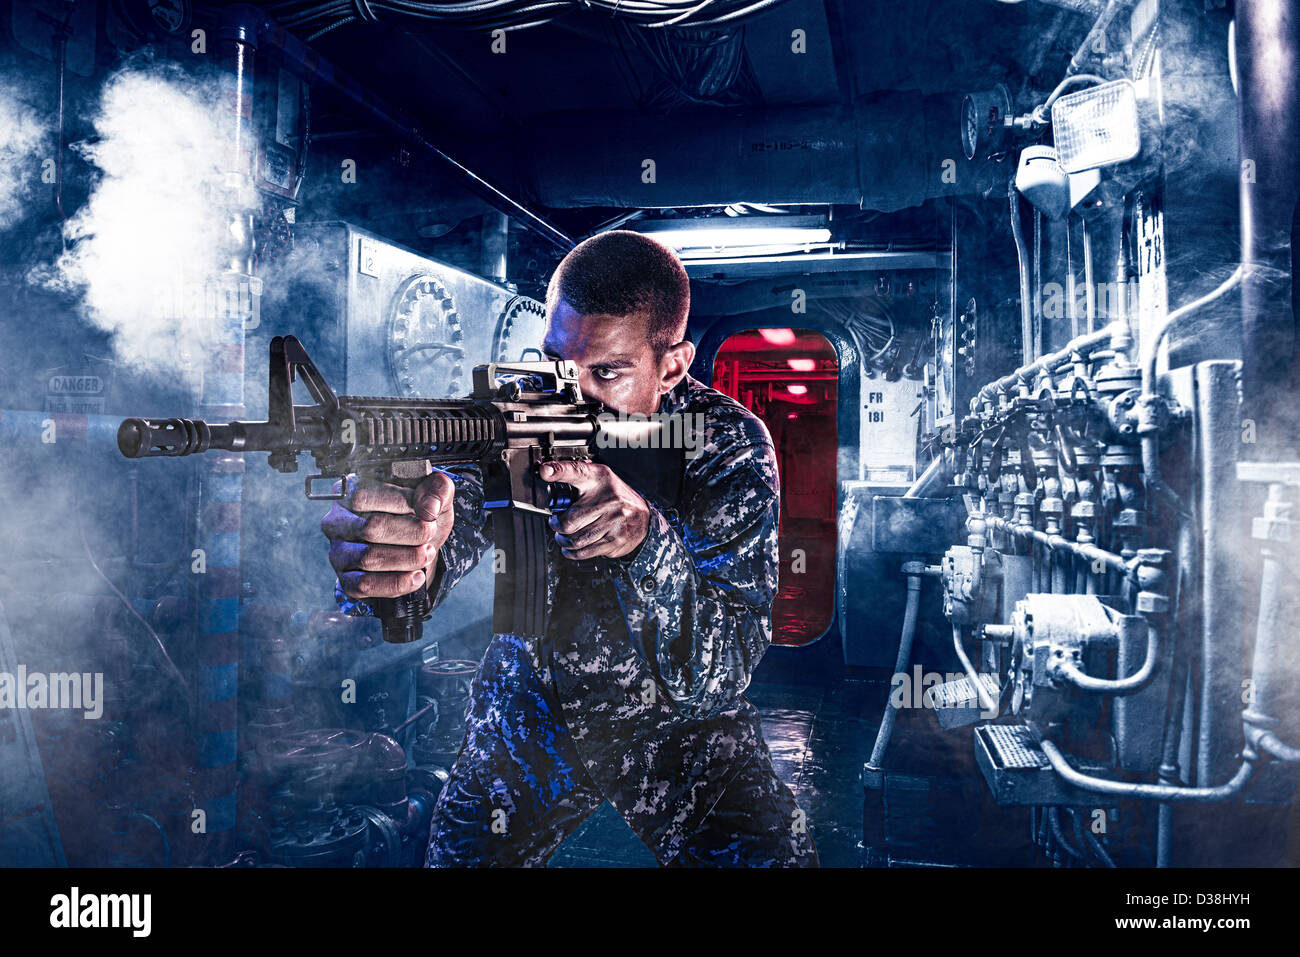 Soldier shooting assault rifle indoors - Stock Image